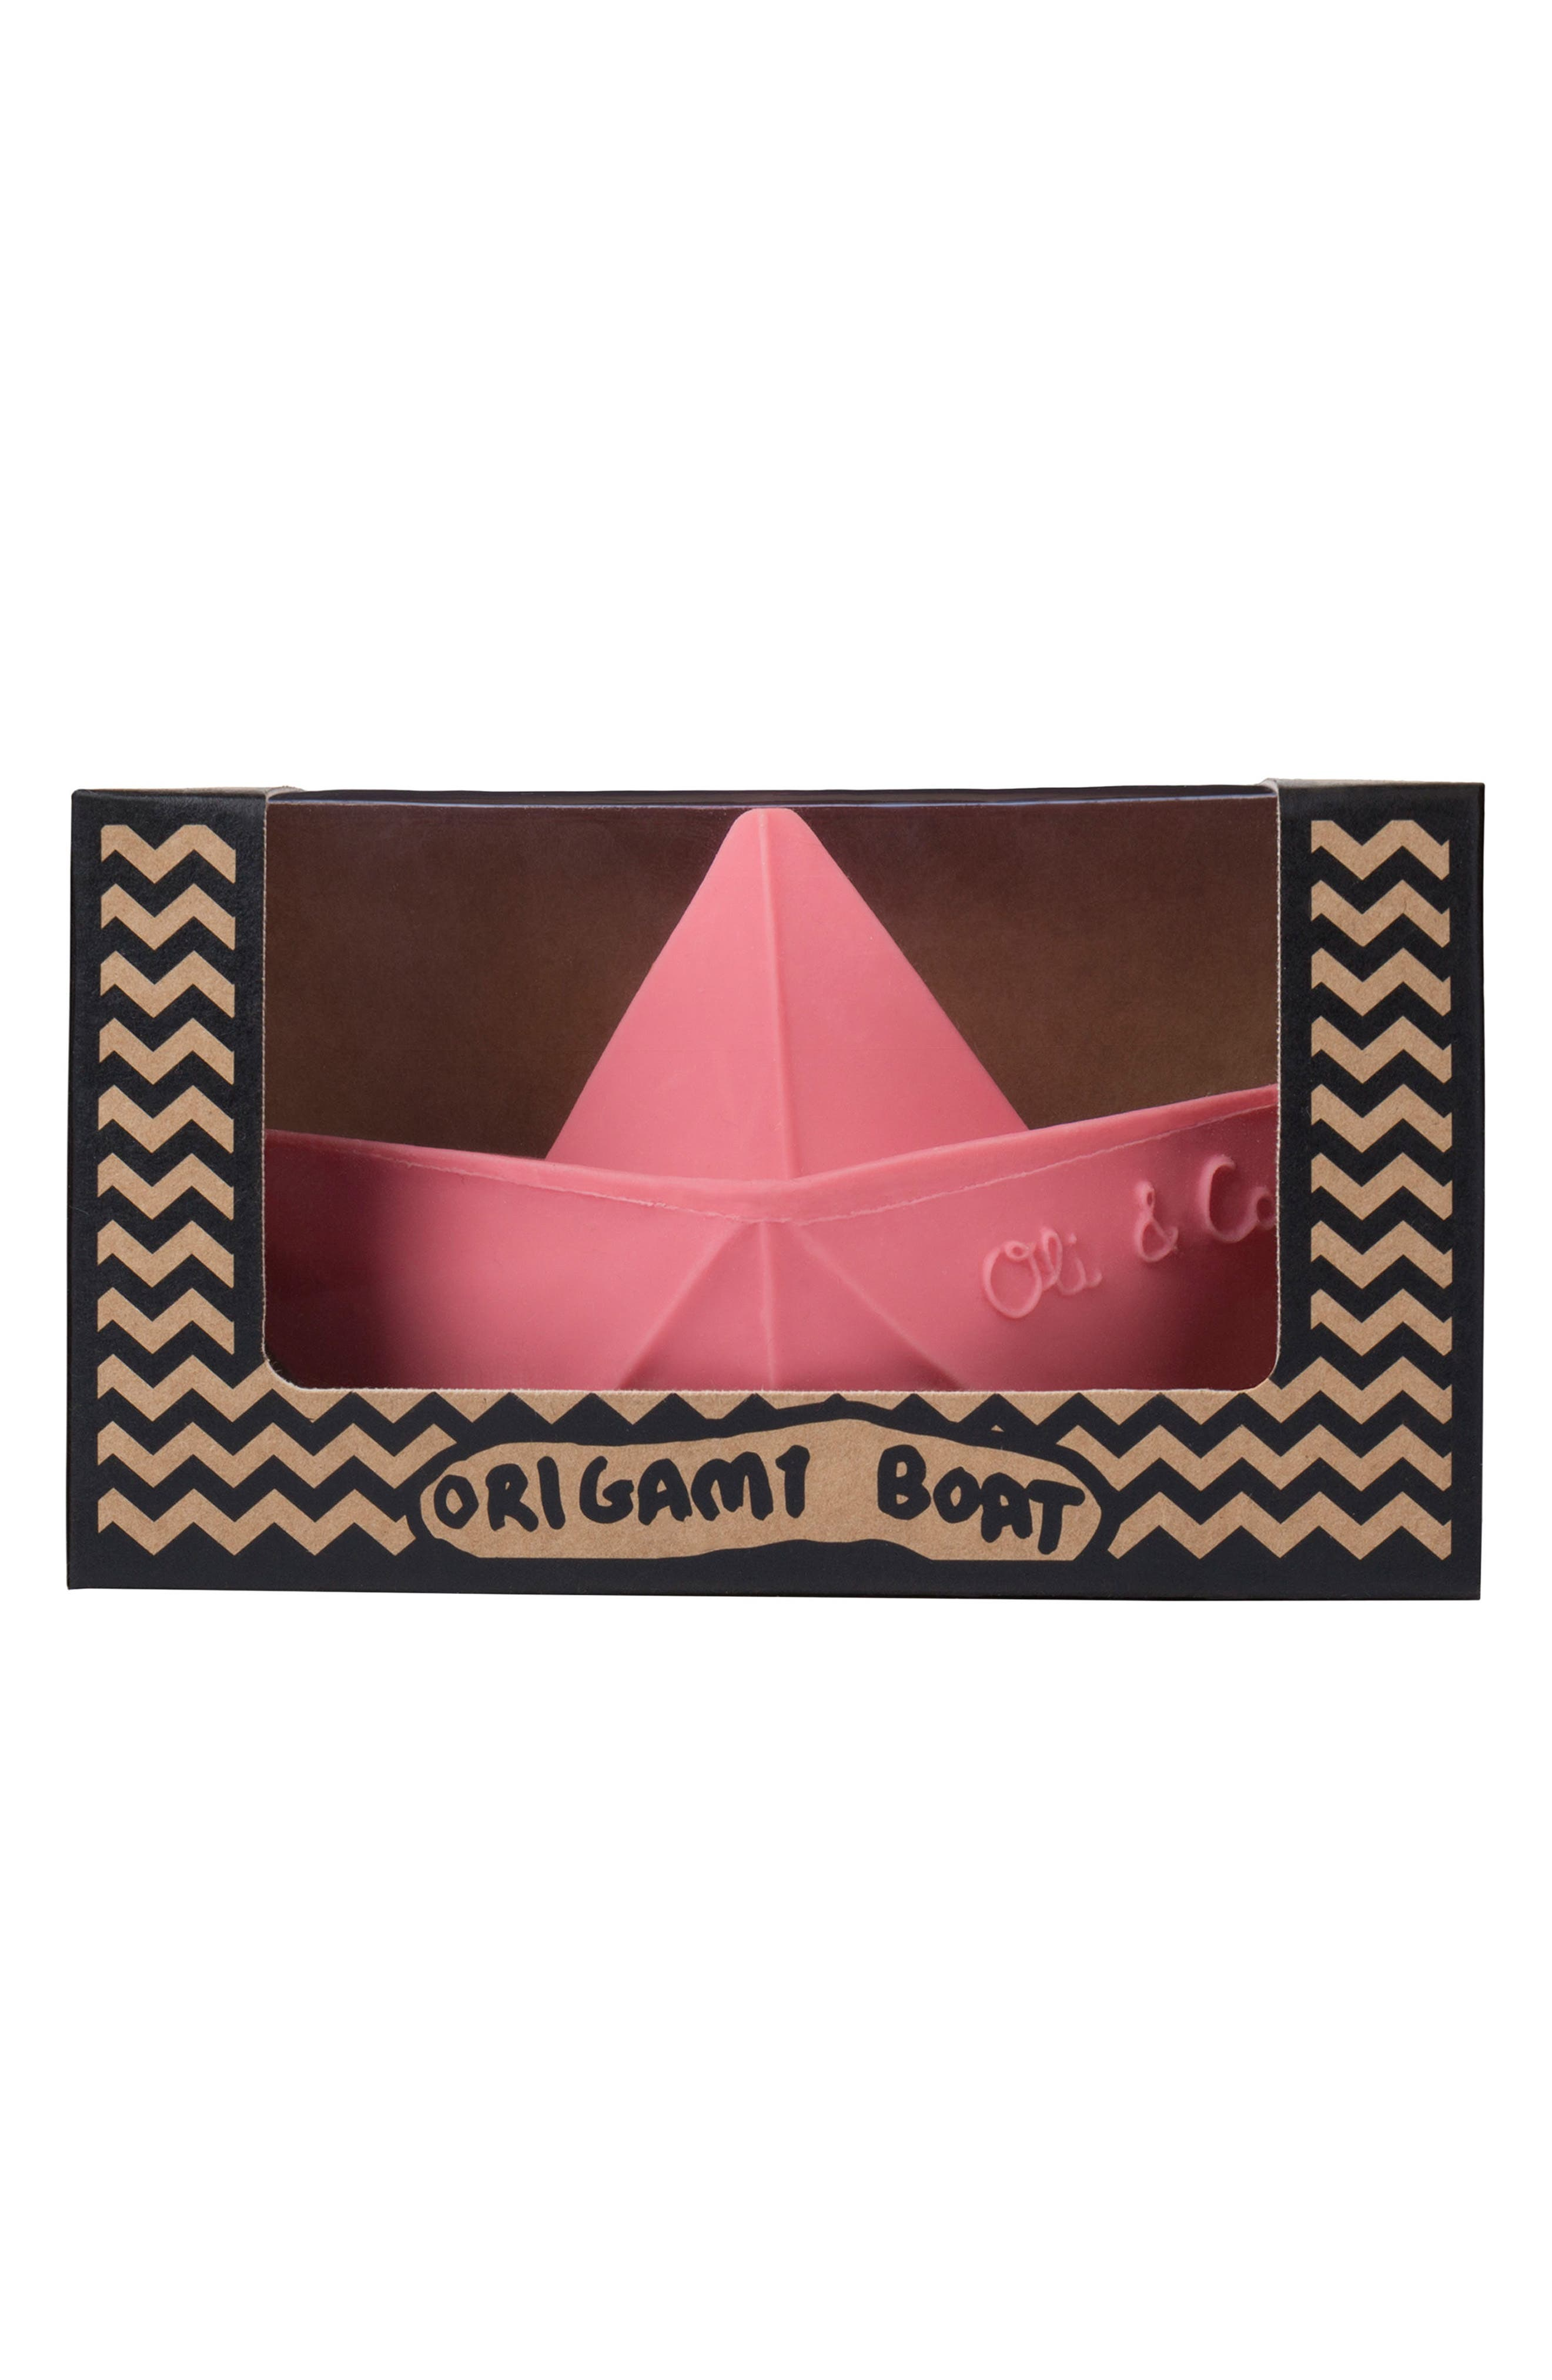 Origami Boat Bath Toy,                             Alternate thumbnail 4, color,                             Pink